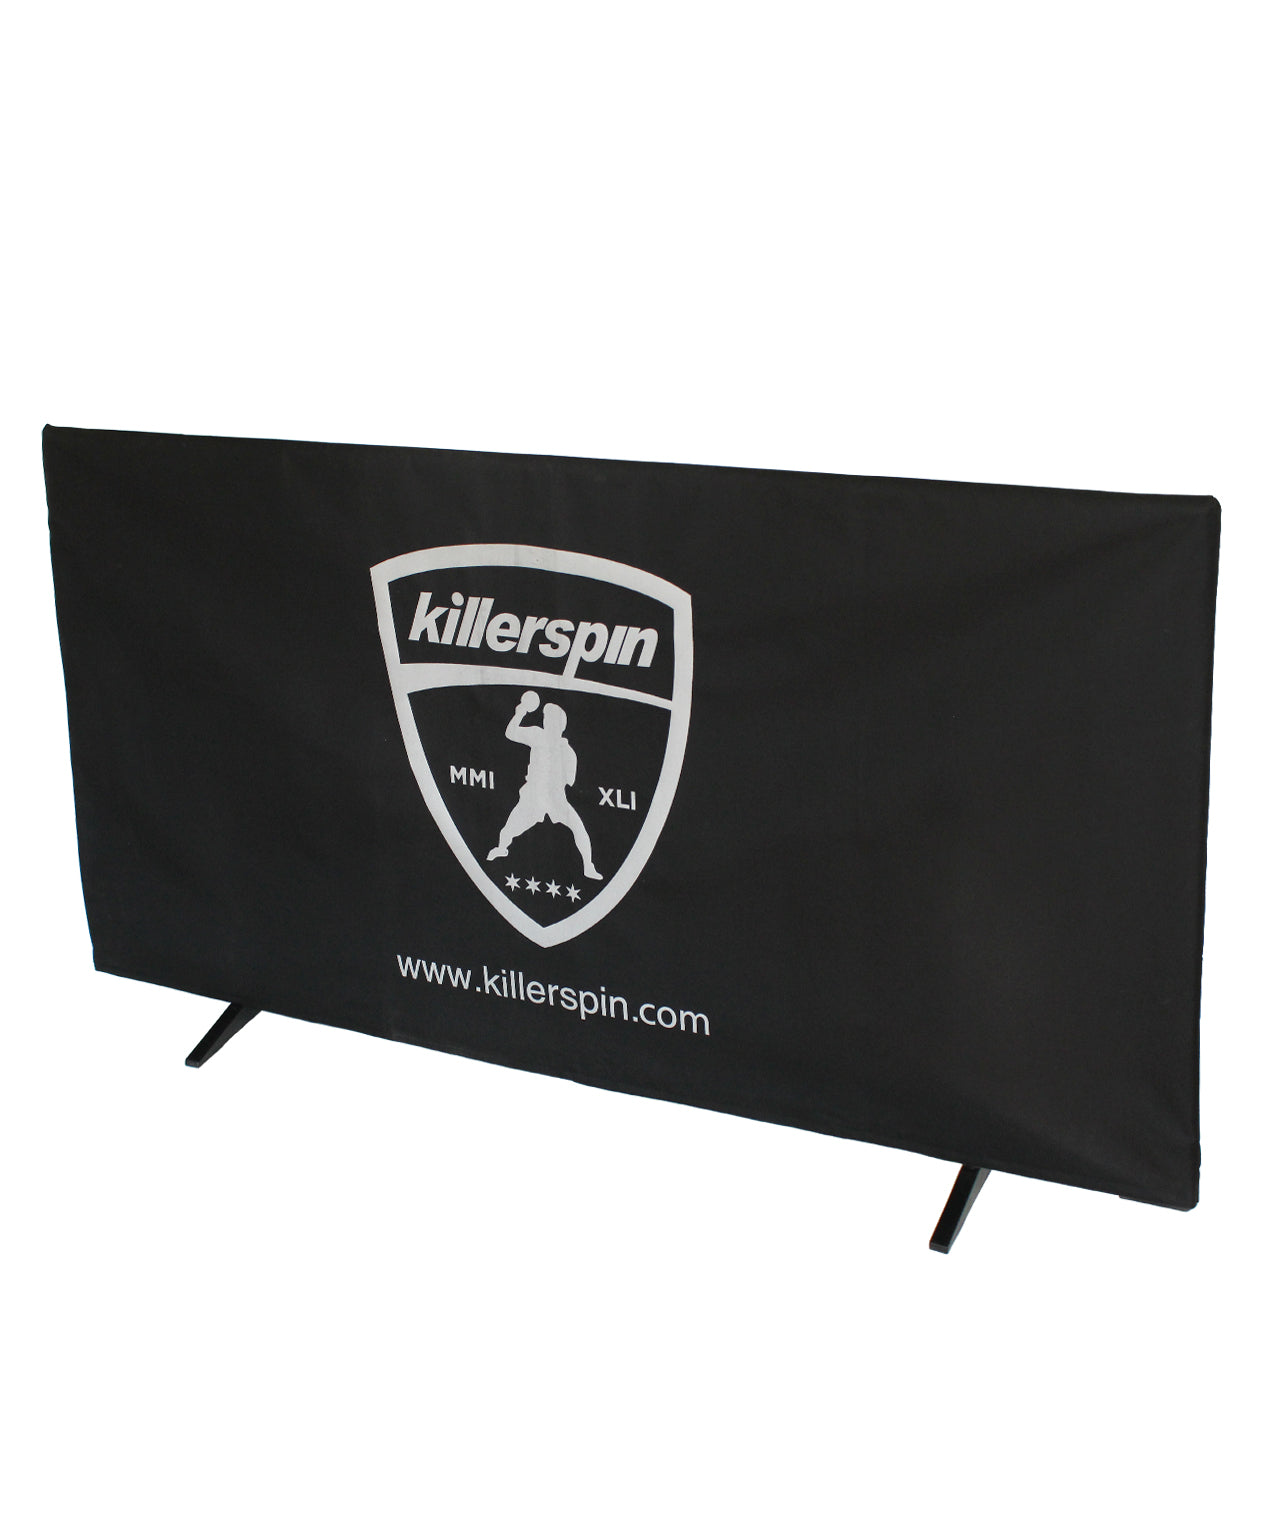 Killerspin Ping Pong Perimeter Barriers – Set of 5 Black Partitions